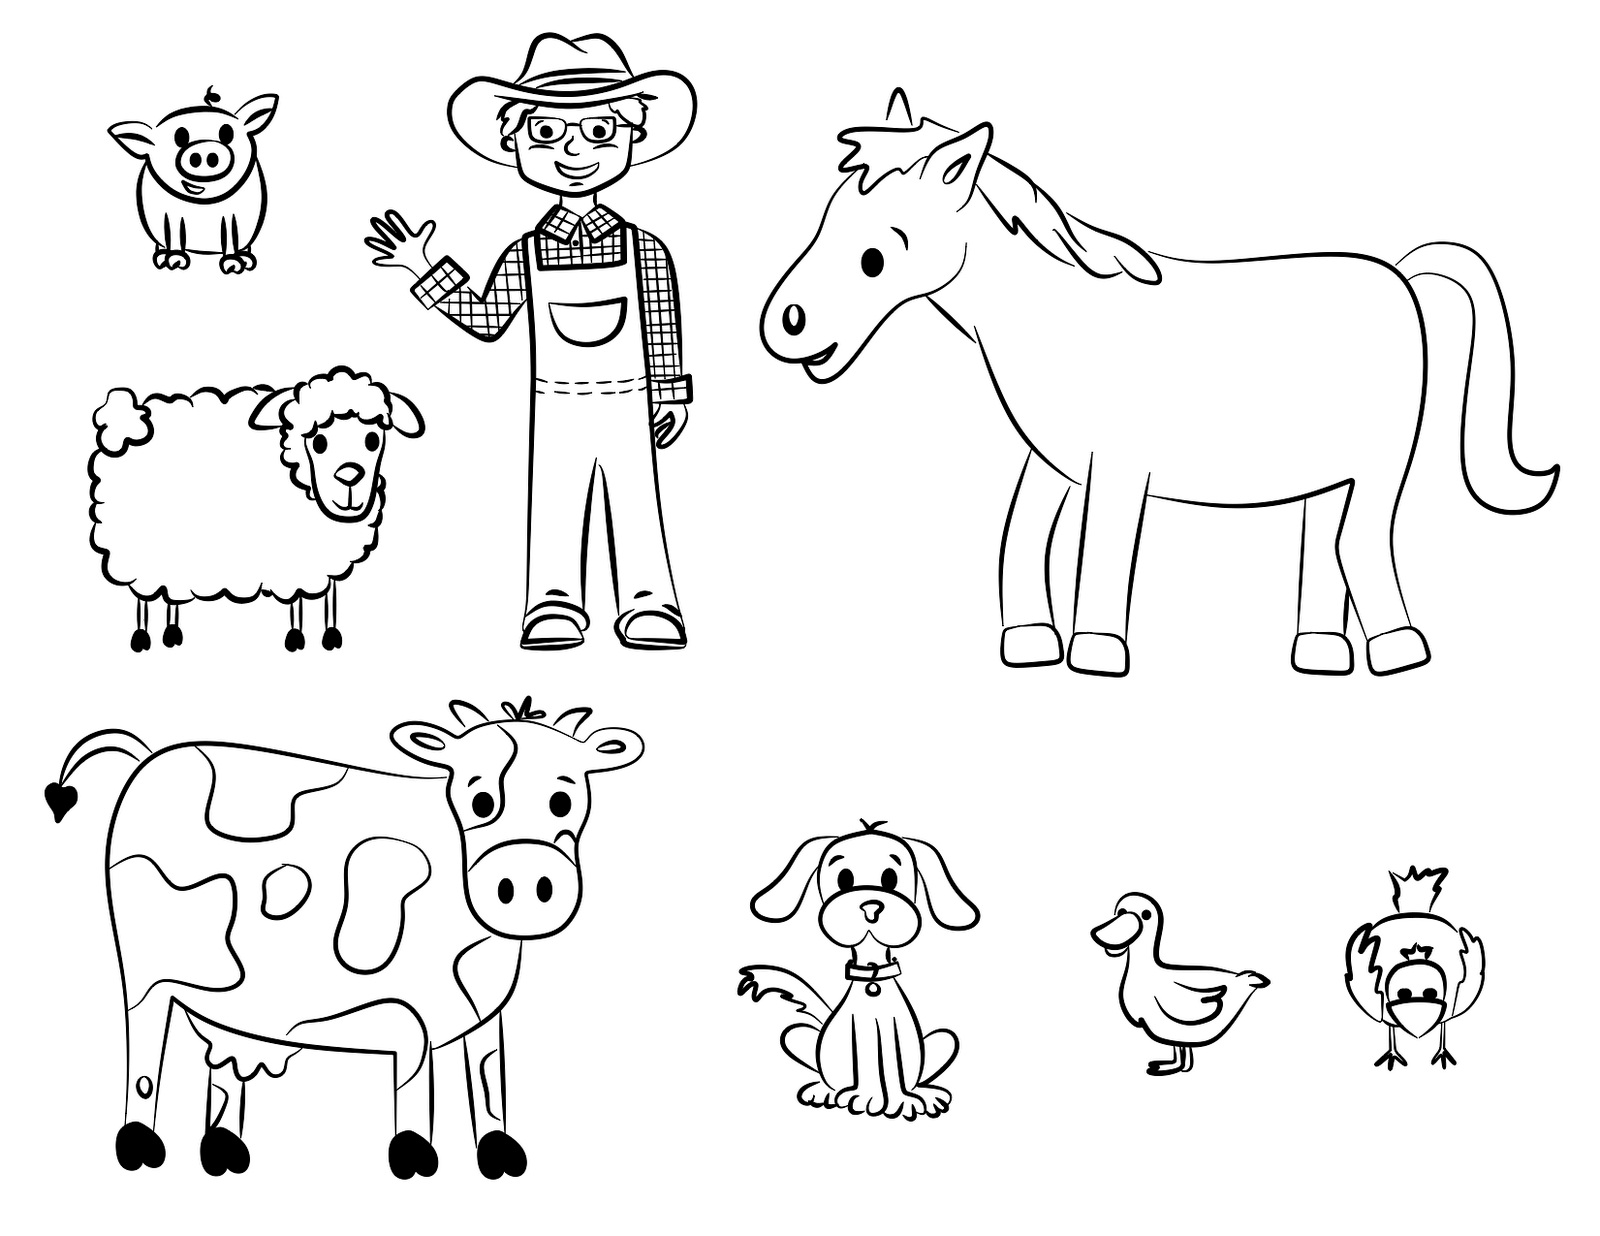 Coloring pages 321 - Free Printable Farm Animal Coloring Pages For Kids